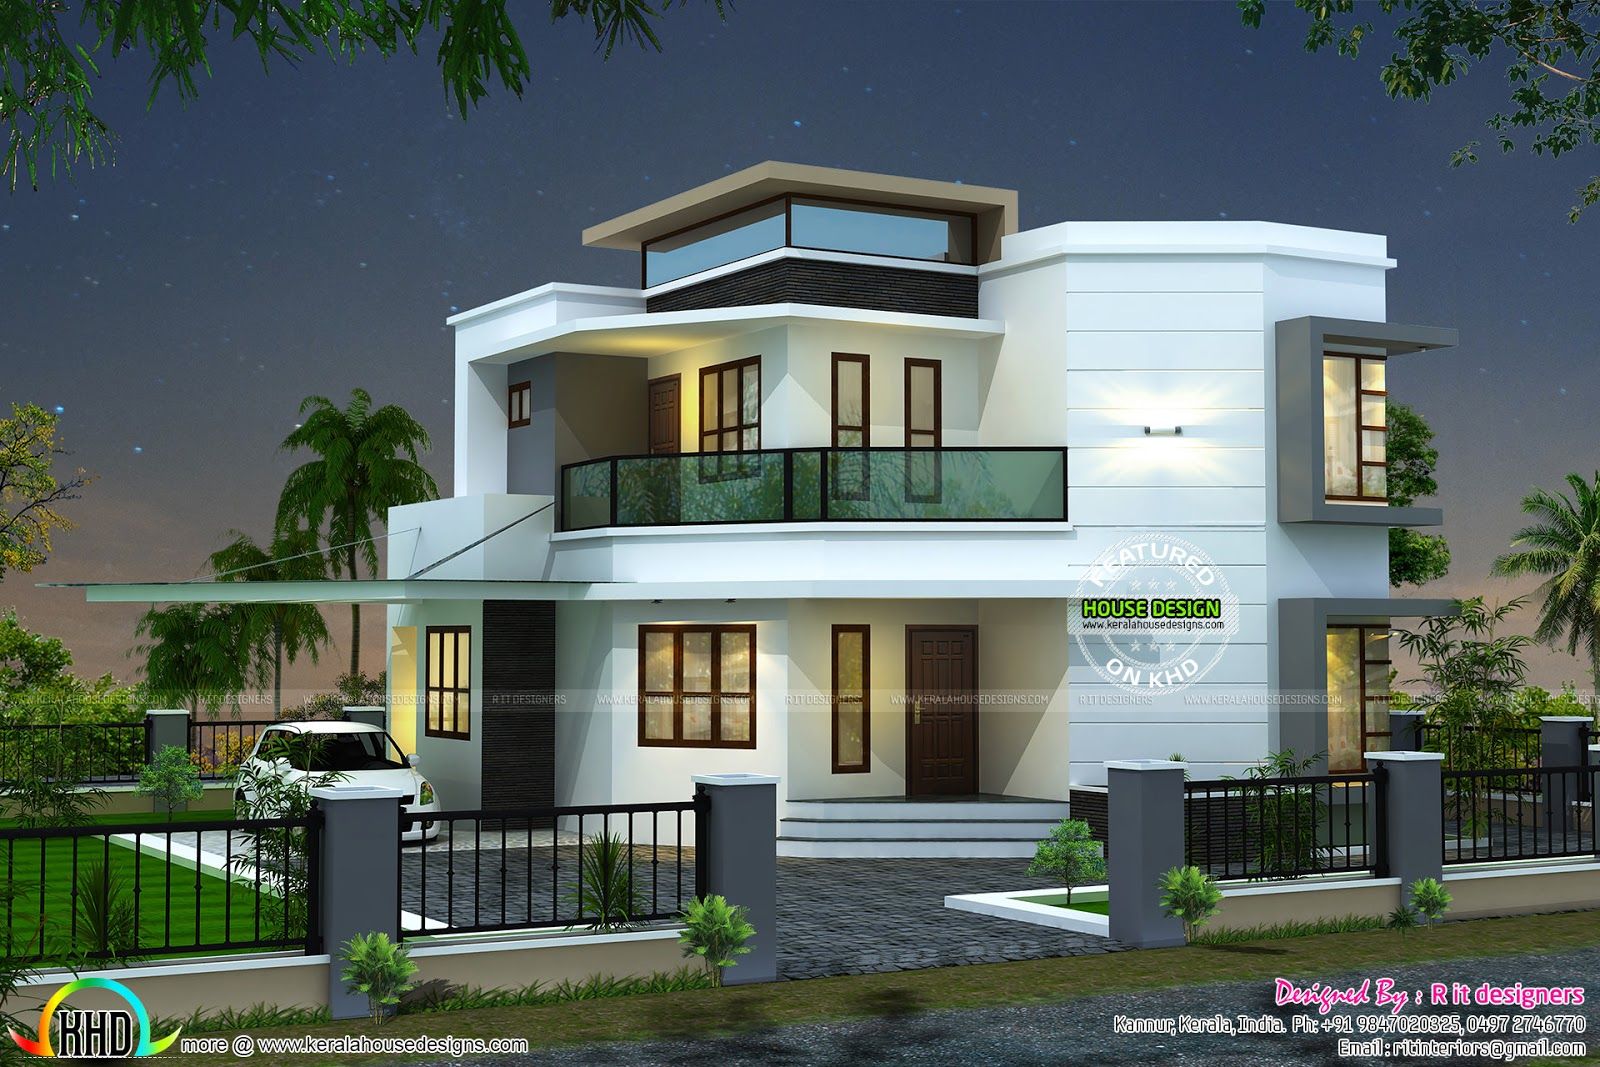 1838 Sq Ft Cute Modern House Kerala Home Design And Floor Plans